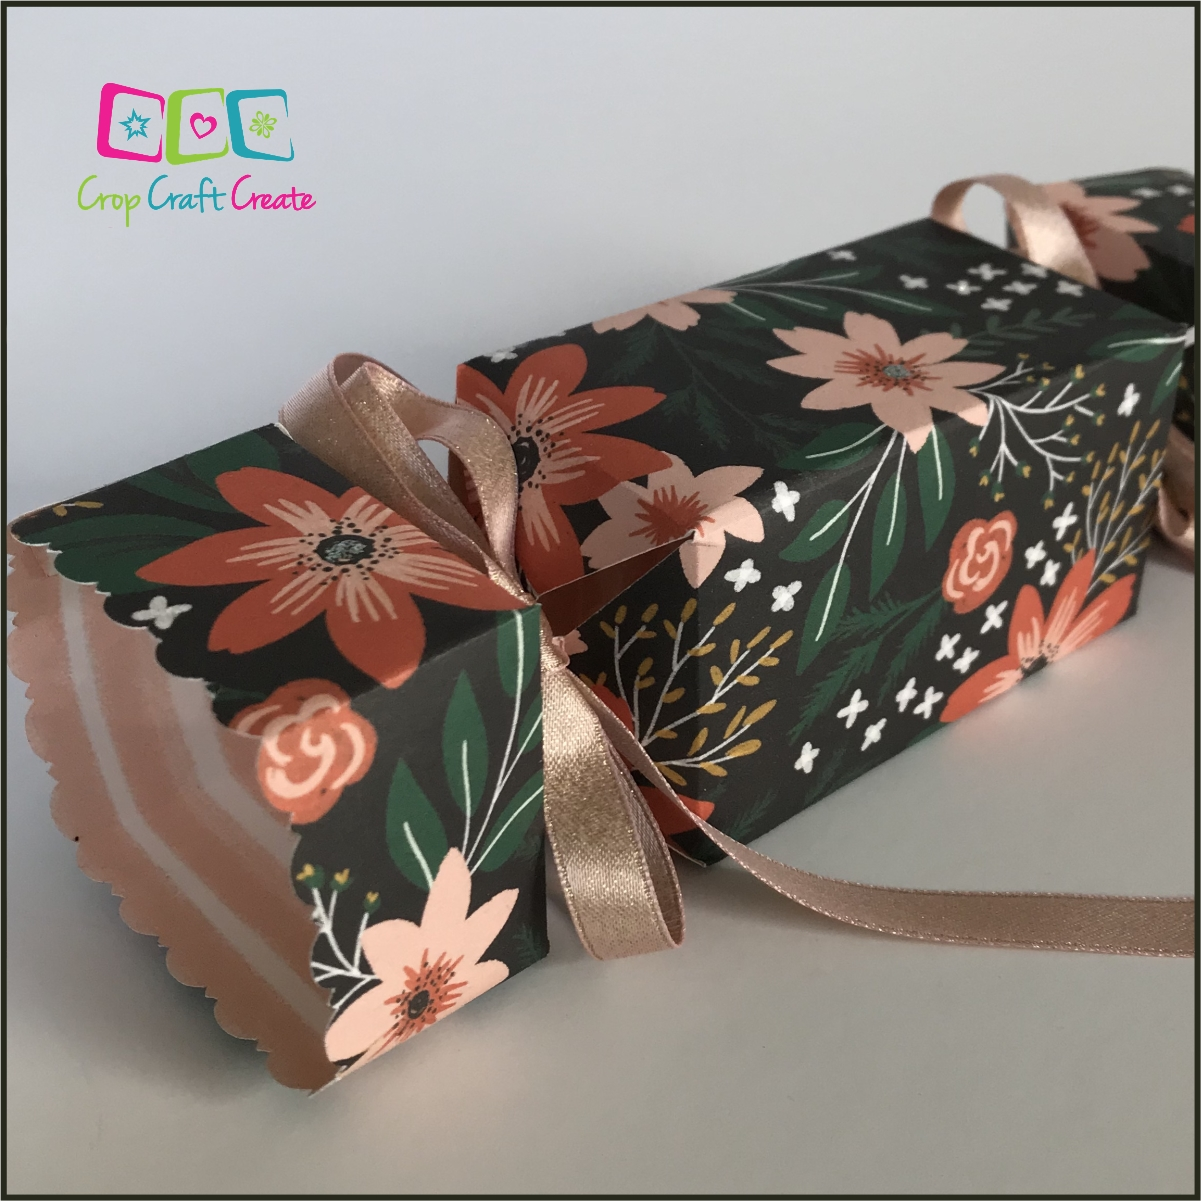 12 Days of Christmas Crafting - Day 6 Christmas Crackers / Bon Bons